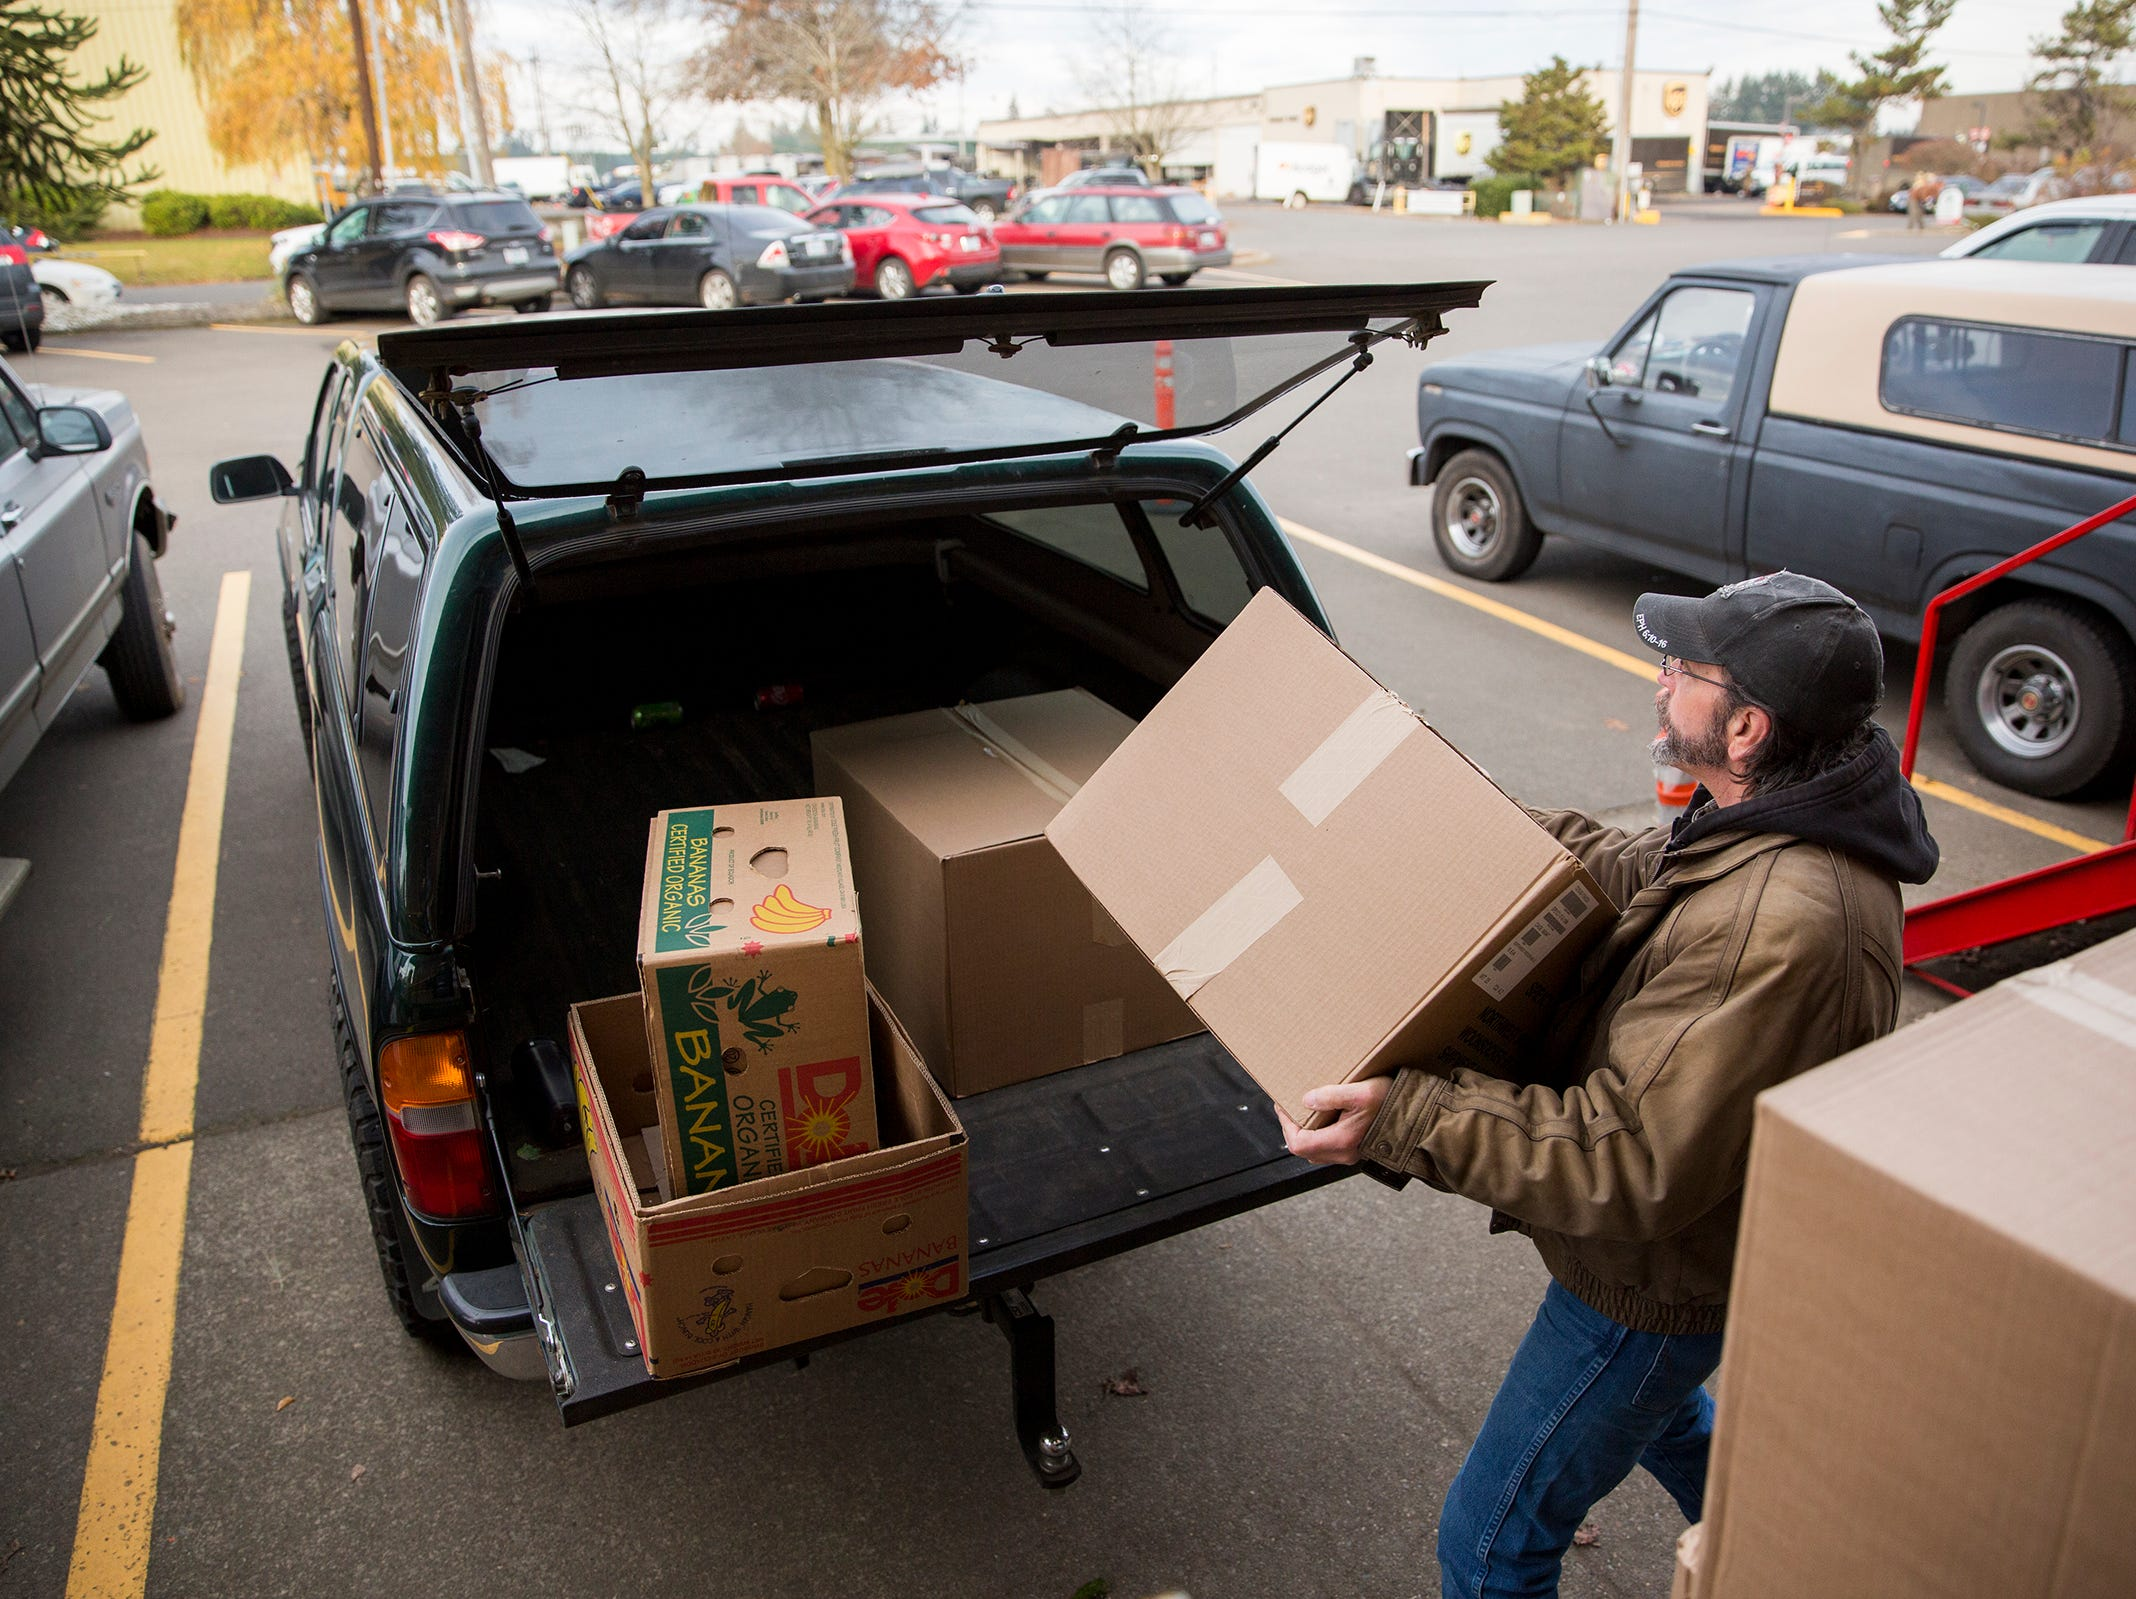 Art Scaglione loads boxes of food into his vehicle at the Marion Polk Food Share in Salem on Friday, Dec. 7, 2018. He collects the food for homeless people living in Wallace Marine Park.